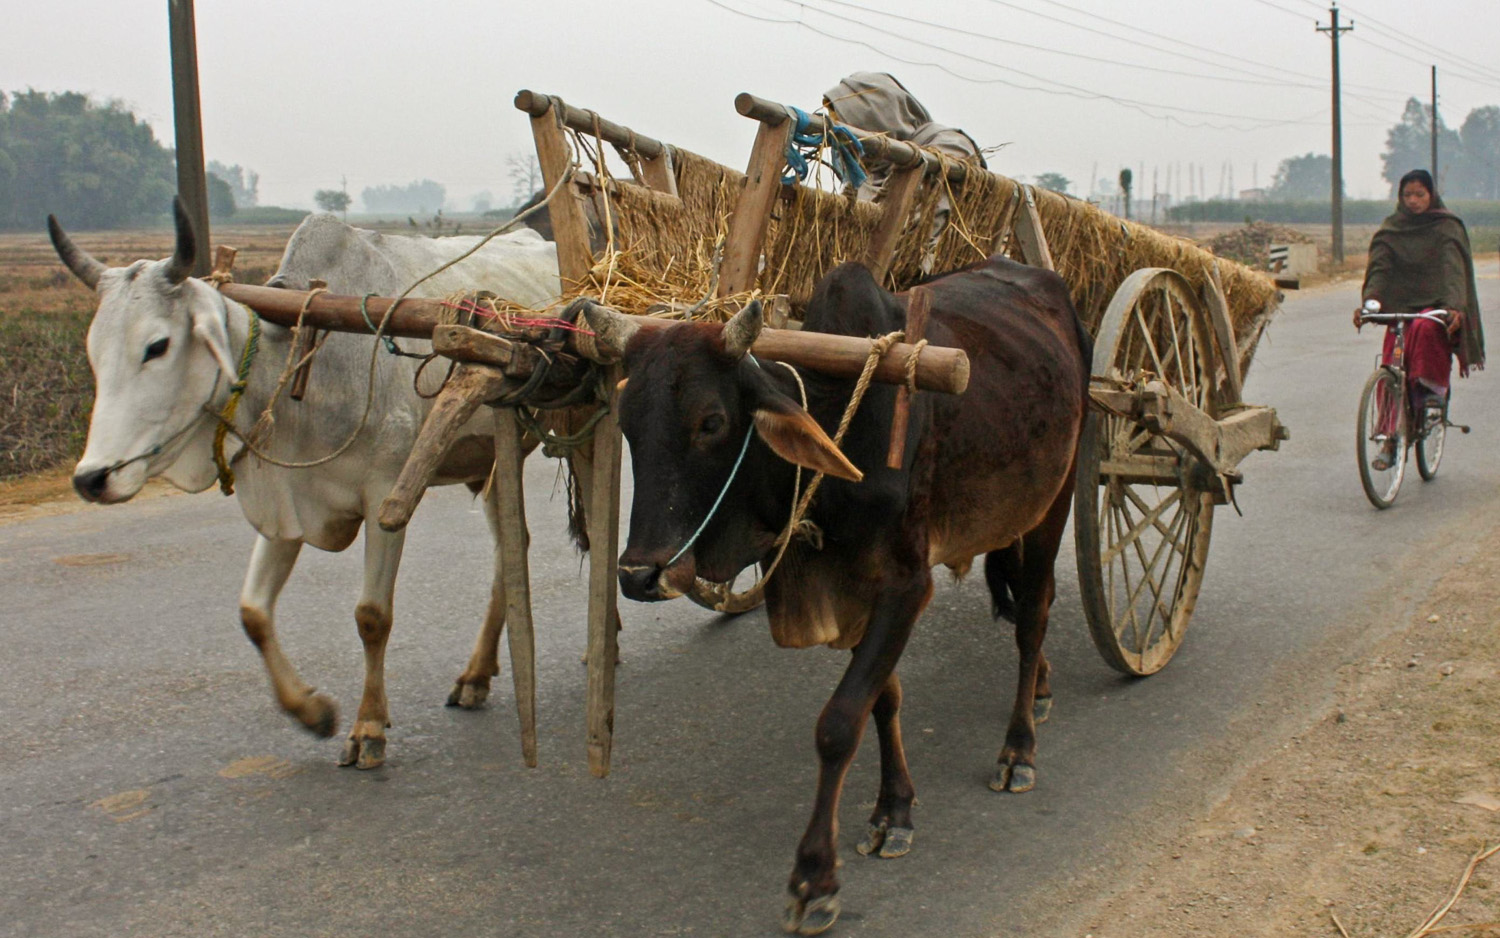 A bullock cart in Nepal with elaborately-spoked wheels. Image:  © Alan Williams